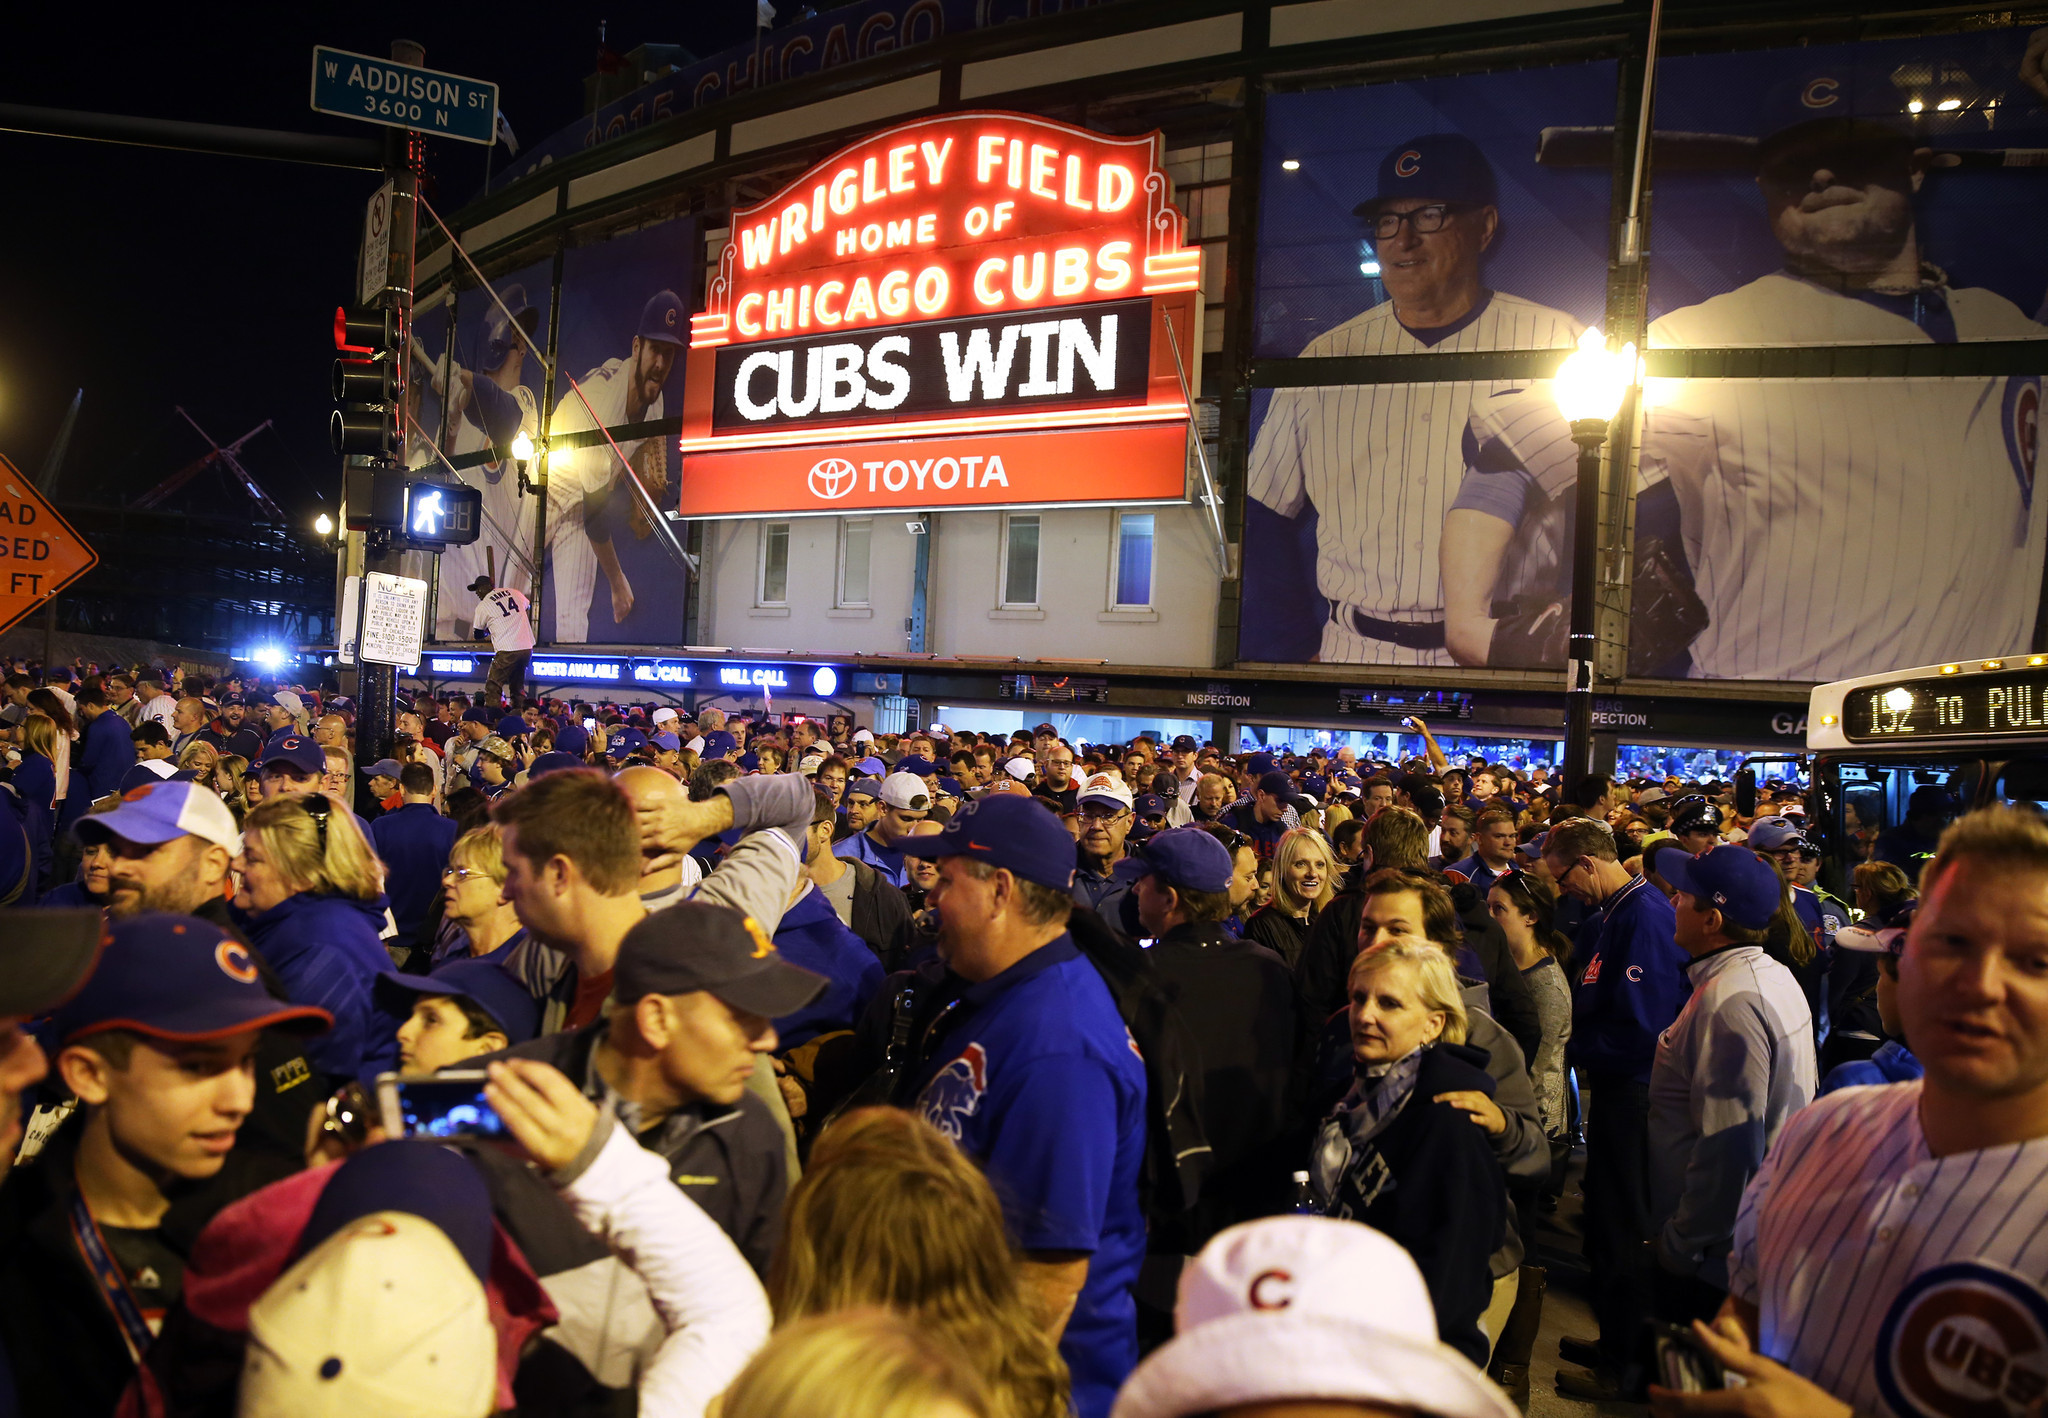 Image result for wrigley field cubs win